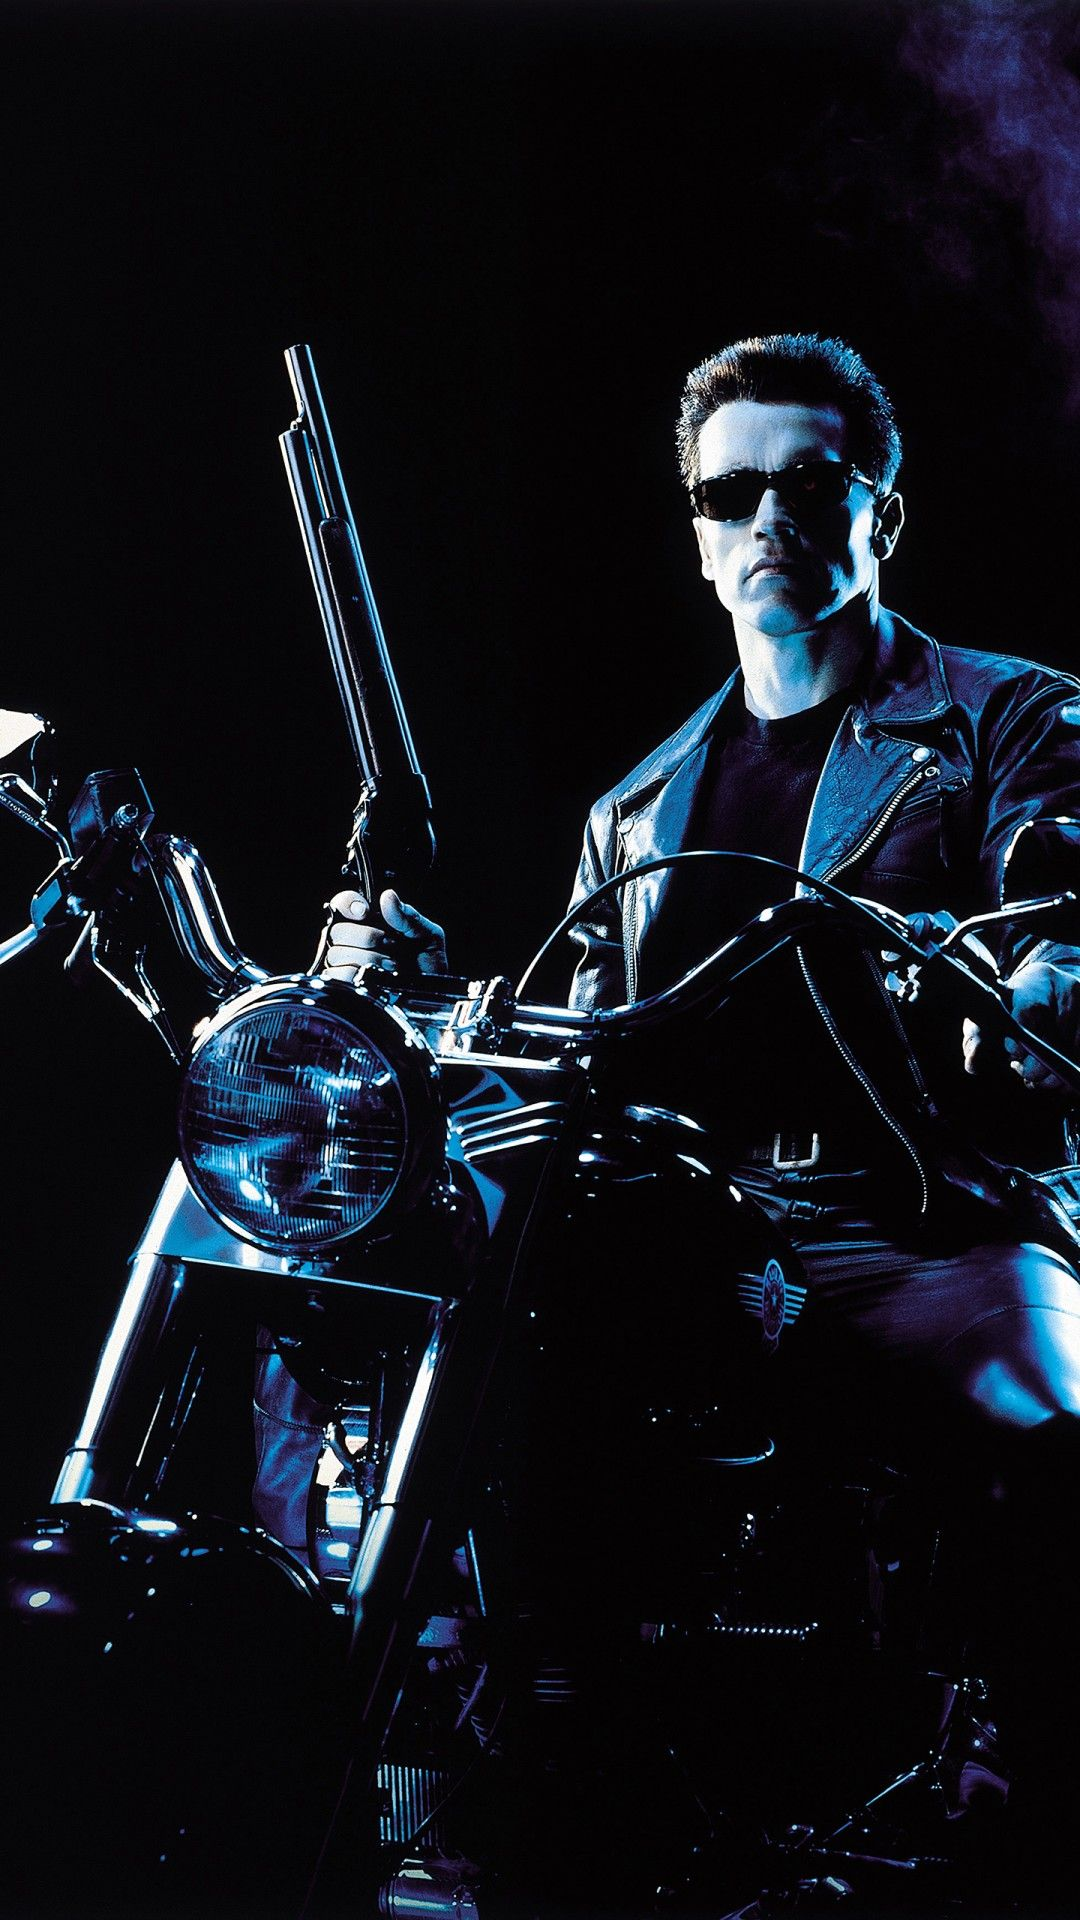 Terminator 2 Judgment Day Wallpapers Wallpaper Cave